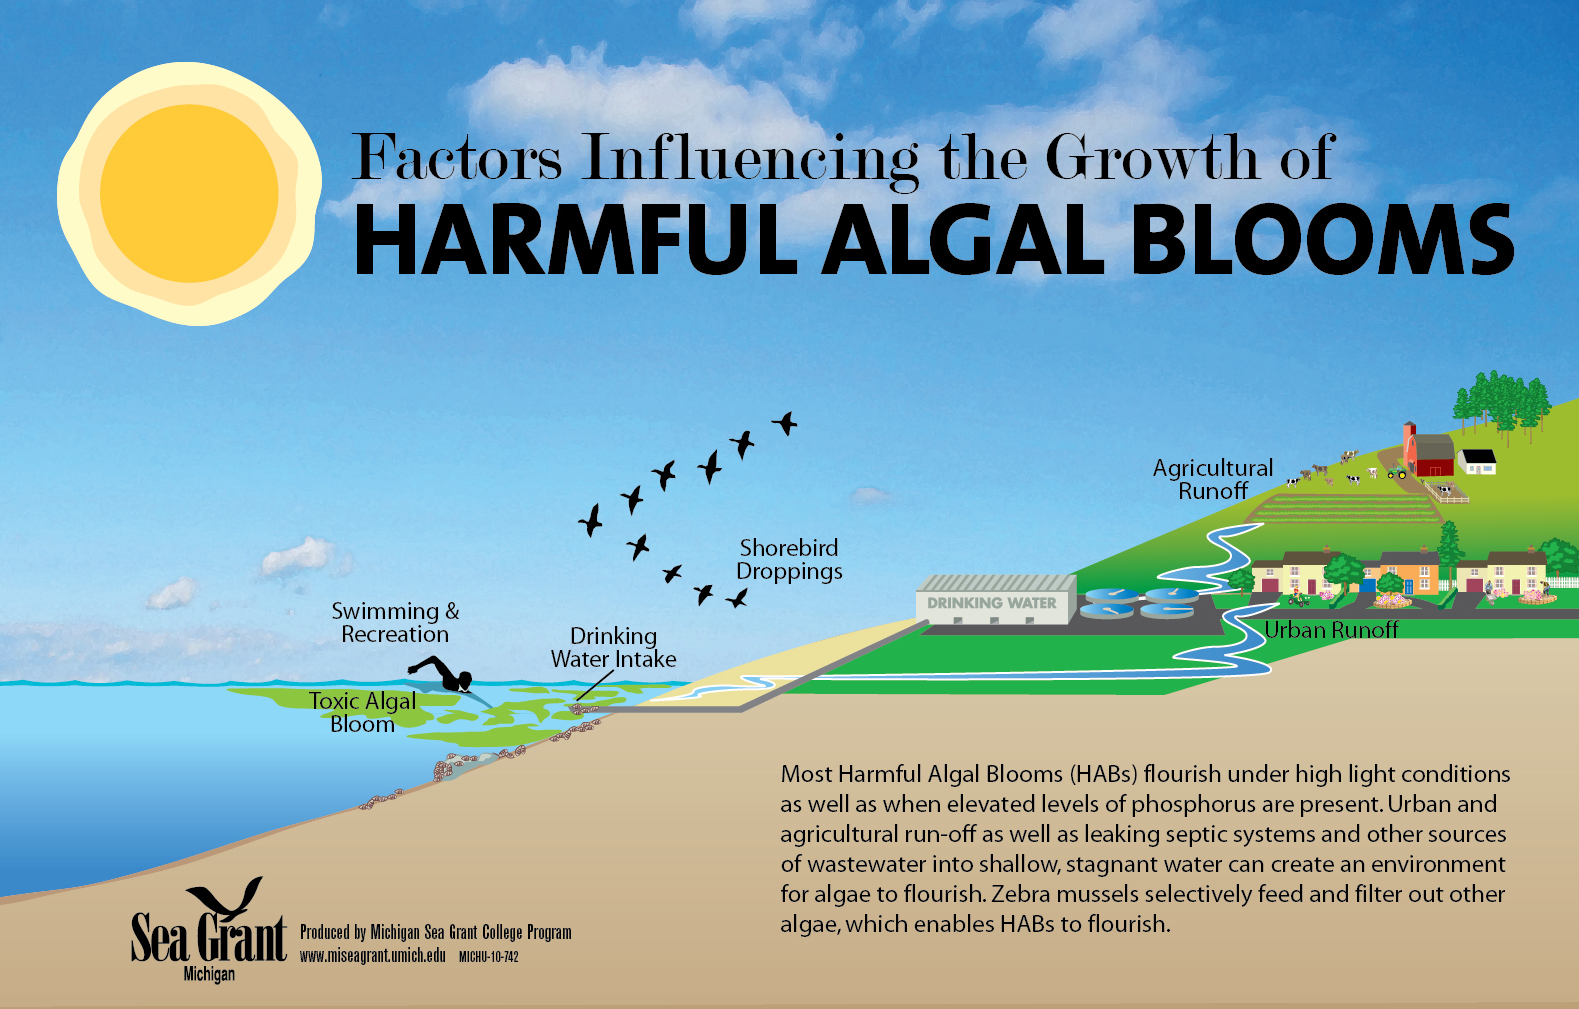 10-742-Harmful-Algal-Bloom-illustration-1579px